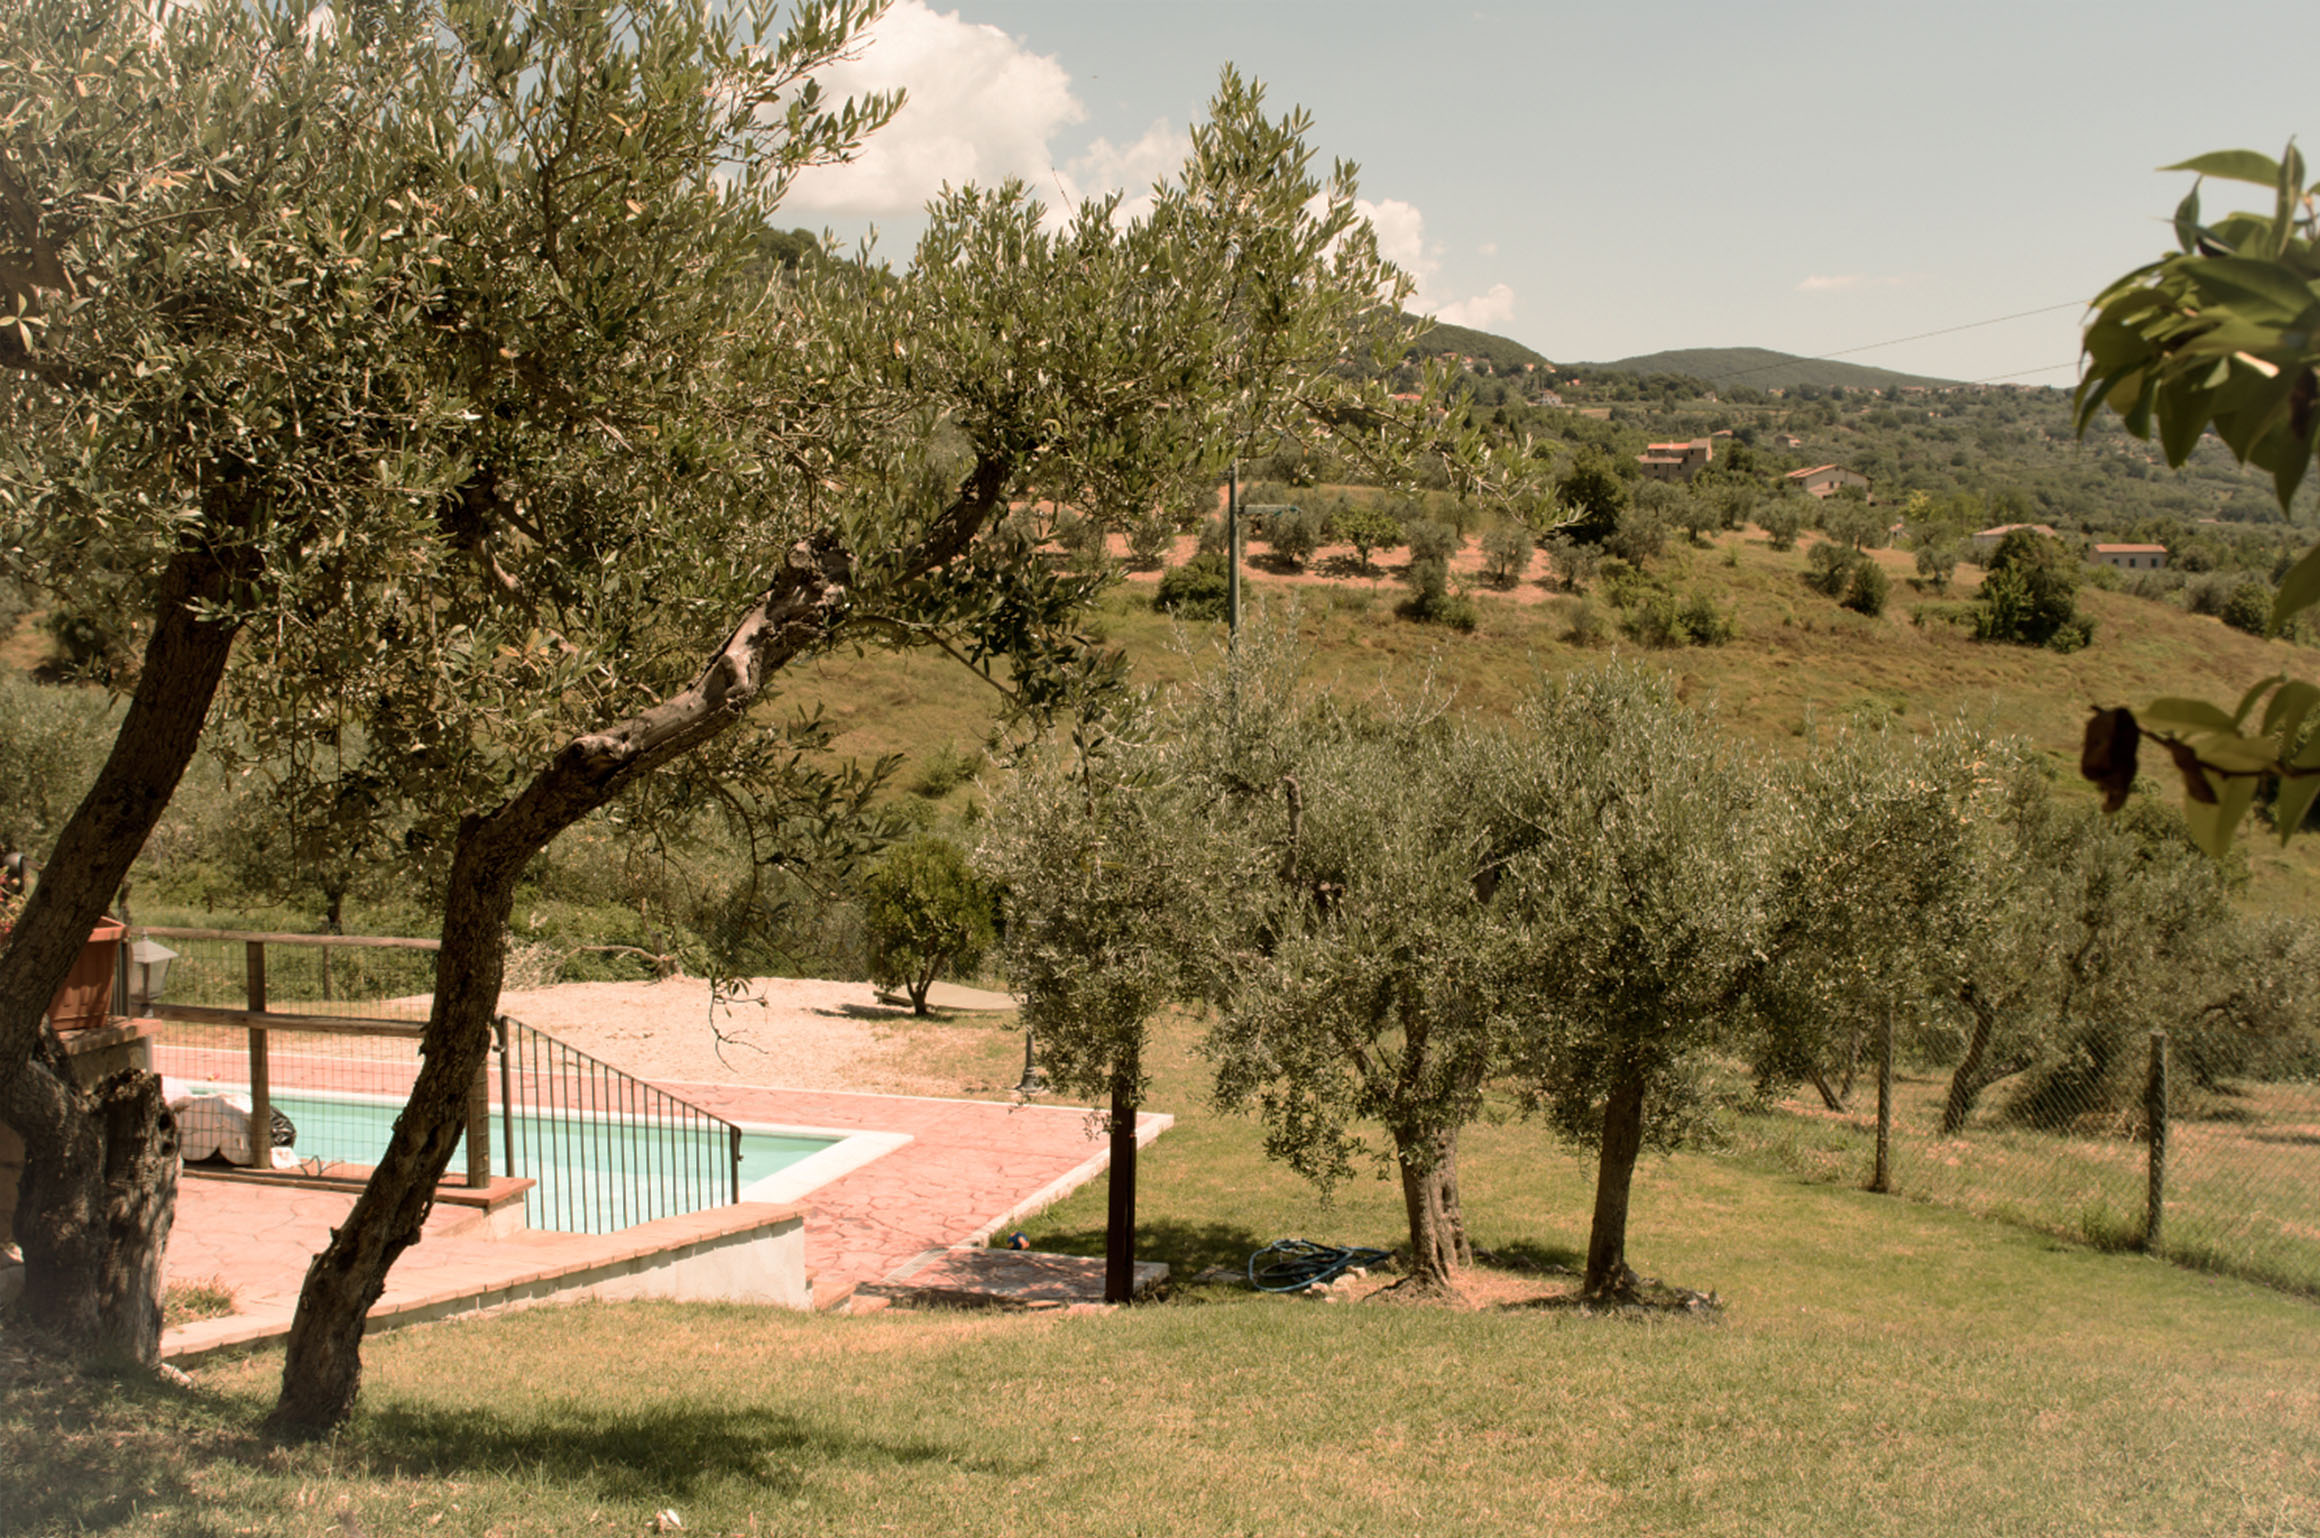 CASA L'ARCOBALENO  Casa l'Arcobaleno is situated in Pozzociolino, part of the beautiful town of Montecchio. You'll love to relax by the pool amongst our olivegrove.